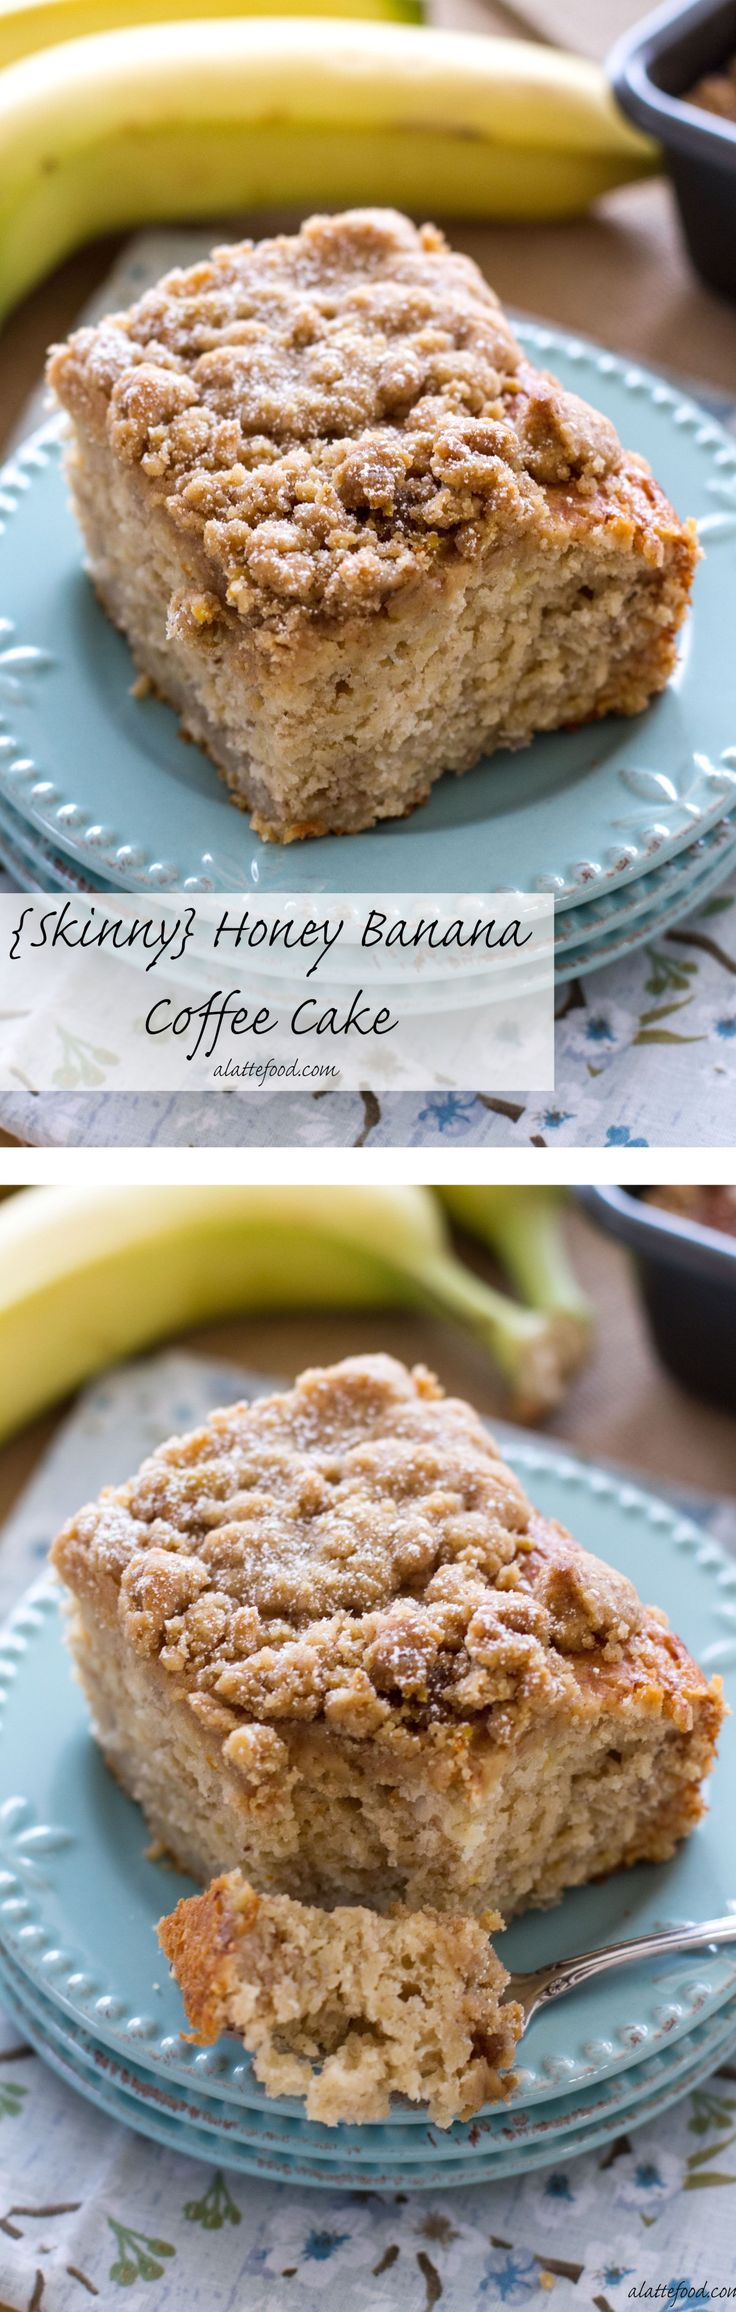 {Skinny} Honey Banana Coffee Cake: This coffee cake has no oil or butter in it, but packed with tons of honey and banana flavor! Eat cake for breakfast.    www.alattefood.com